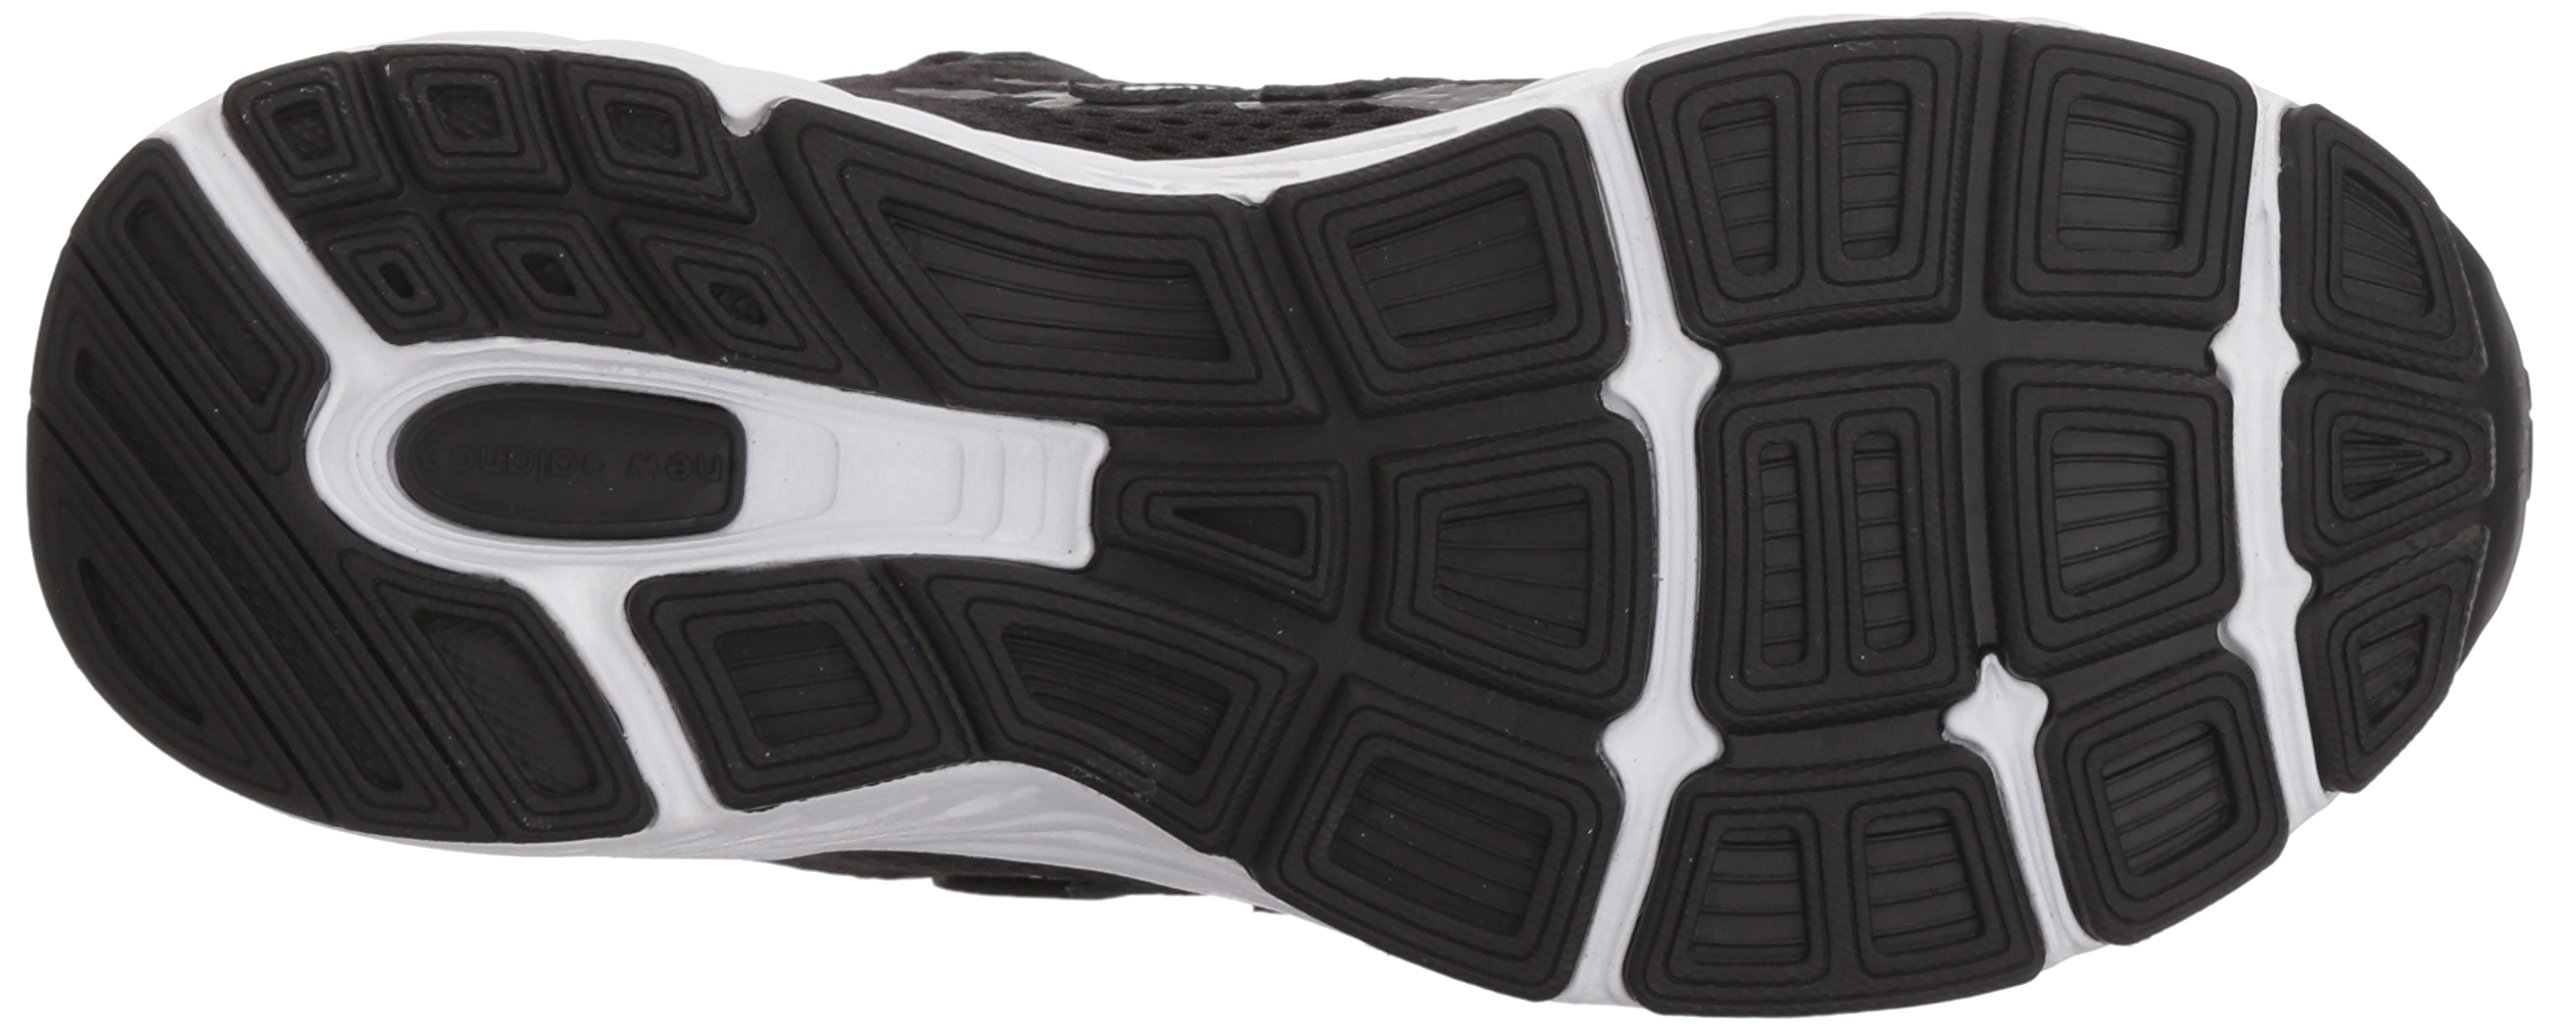 New Balance Boys' 680v5 Hook and Loop Running Shoe, Black/White, 9 M US Toddler by New Balance (Image #3)